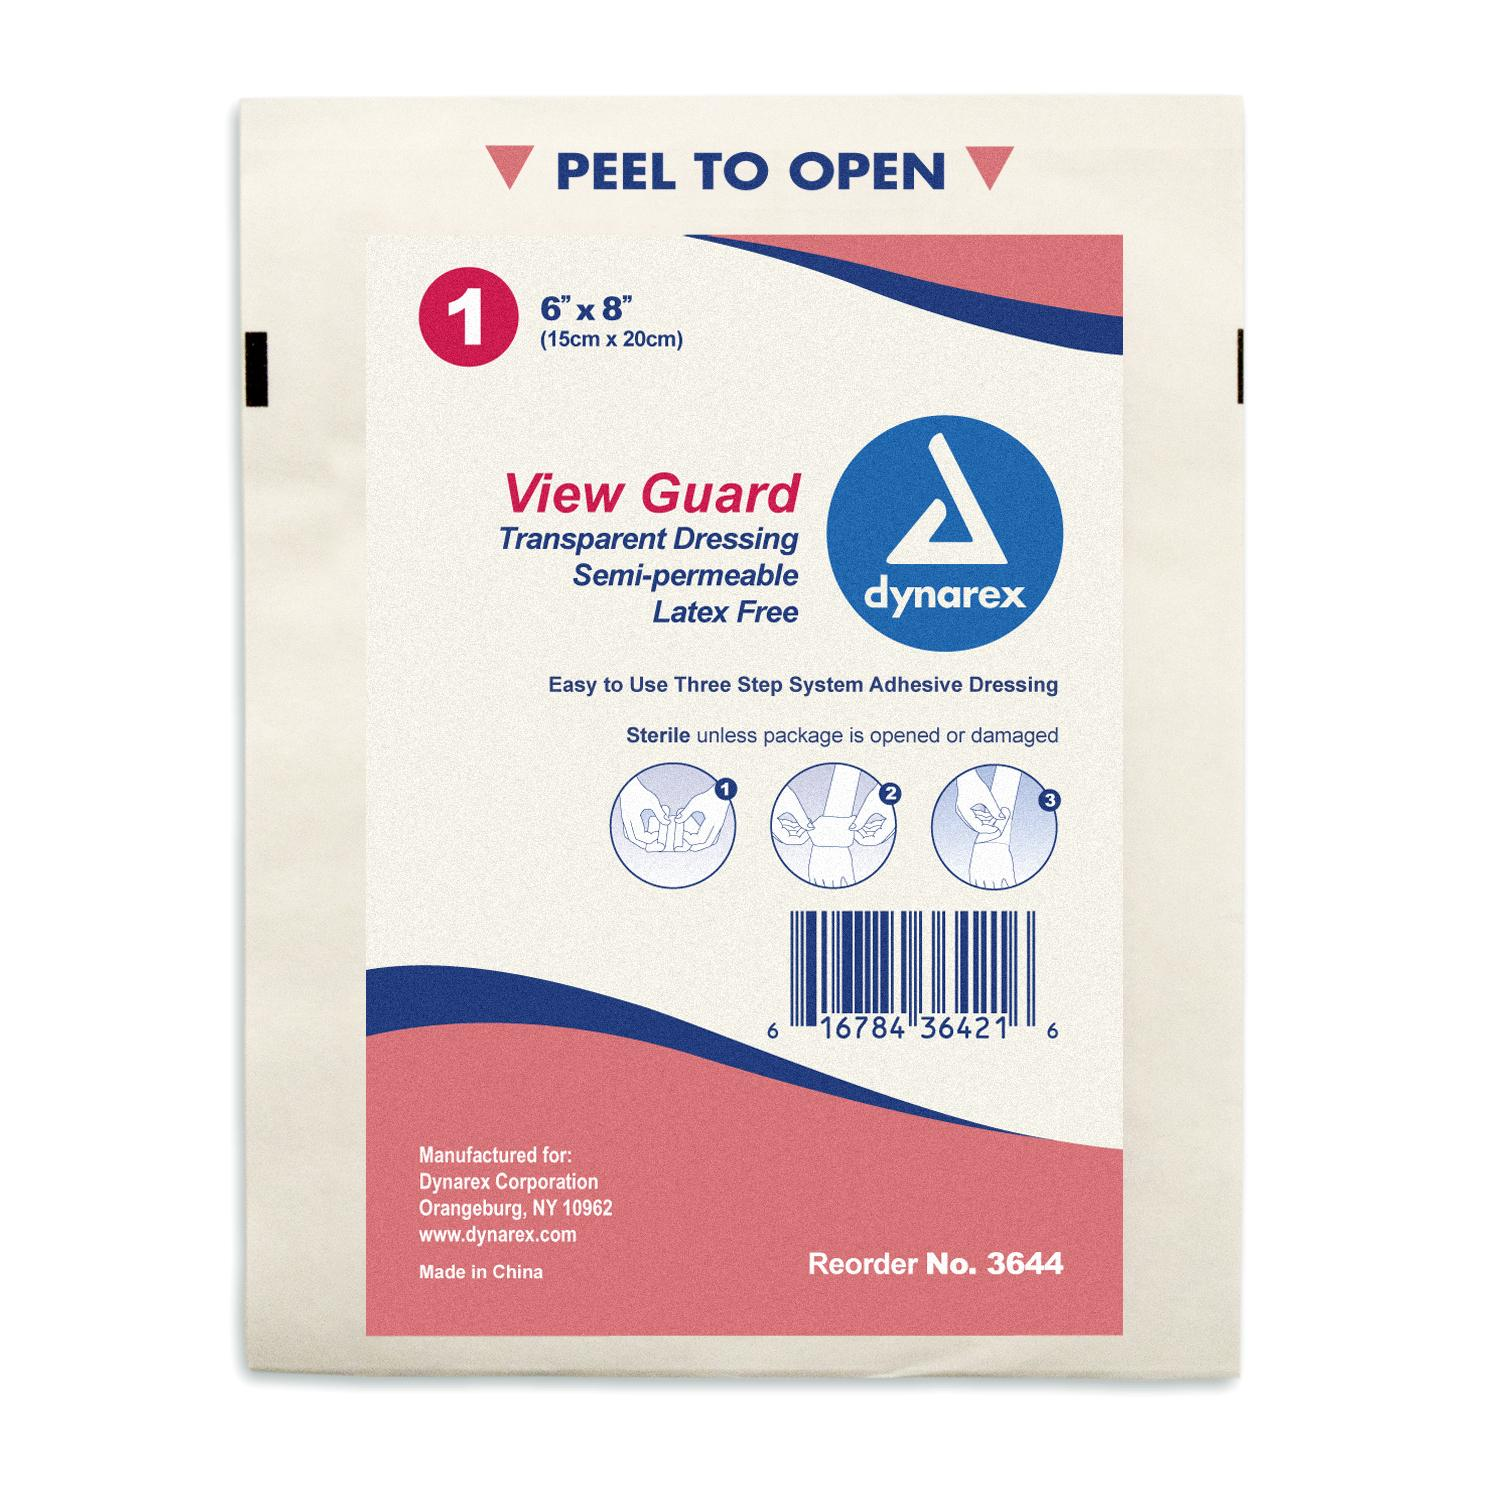 View Guard Transparent Dressing 6